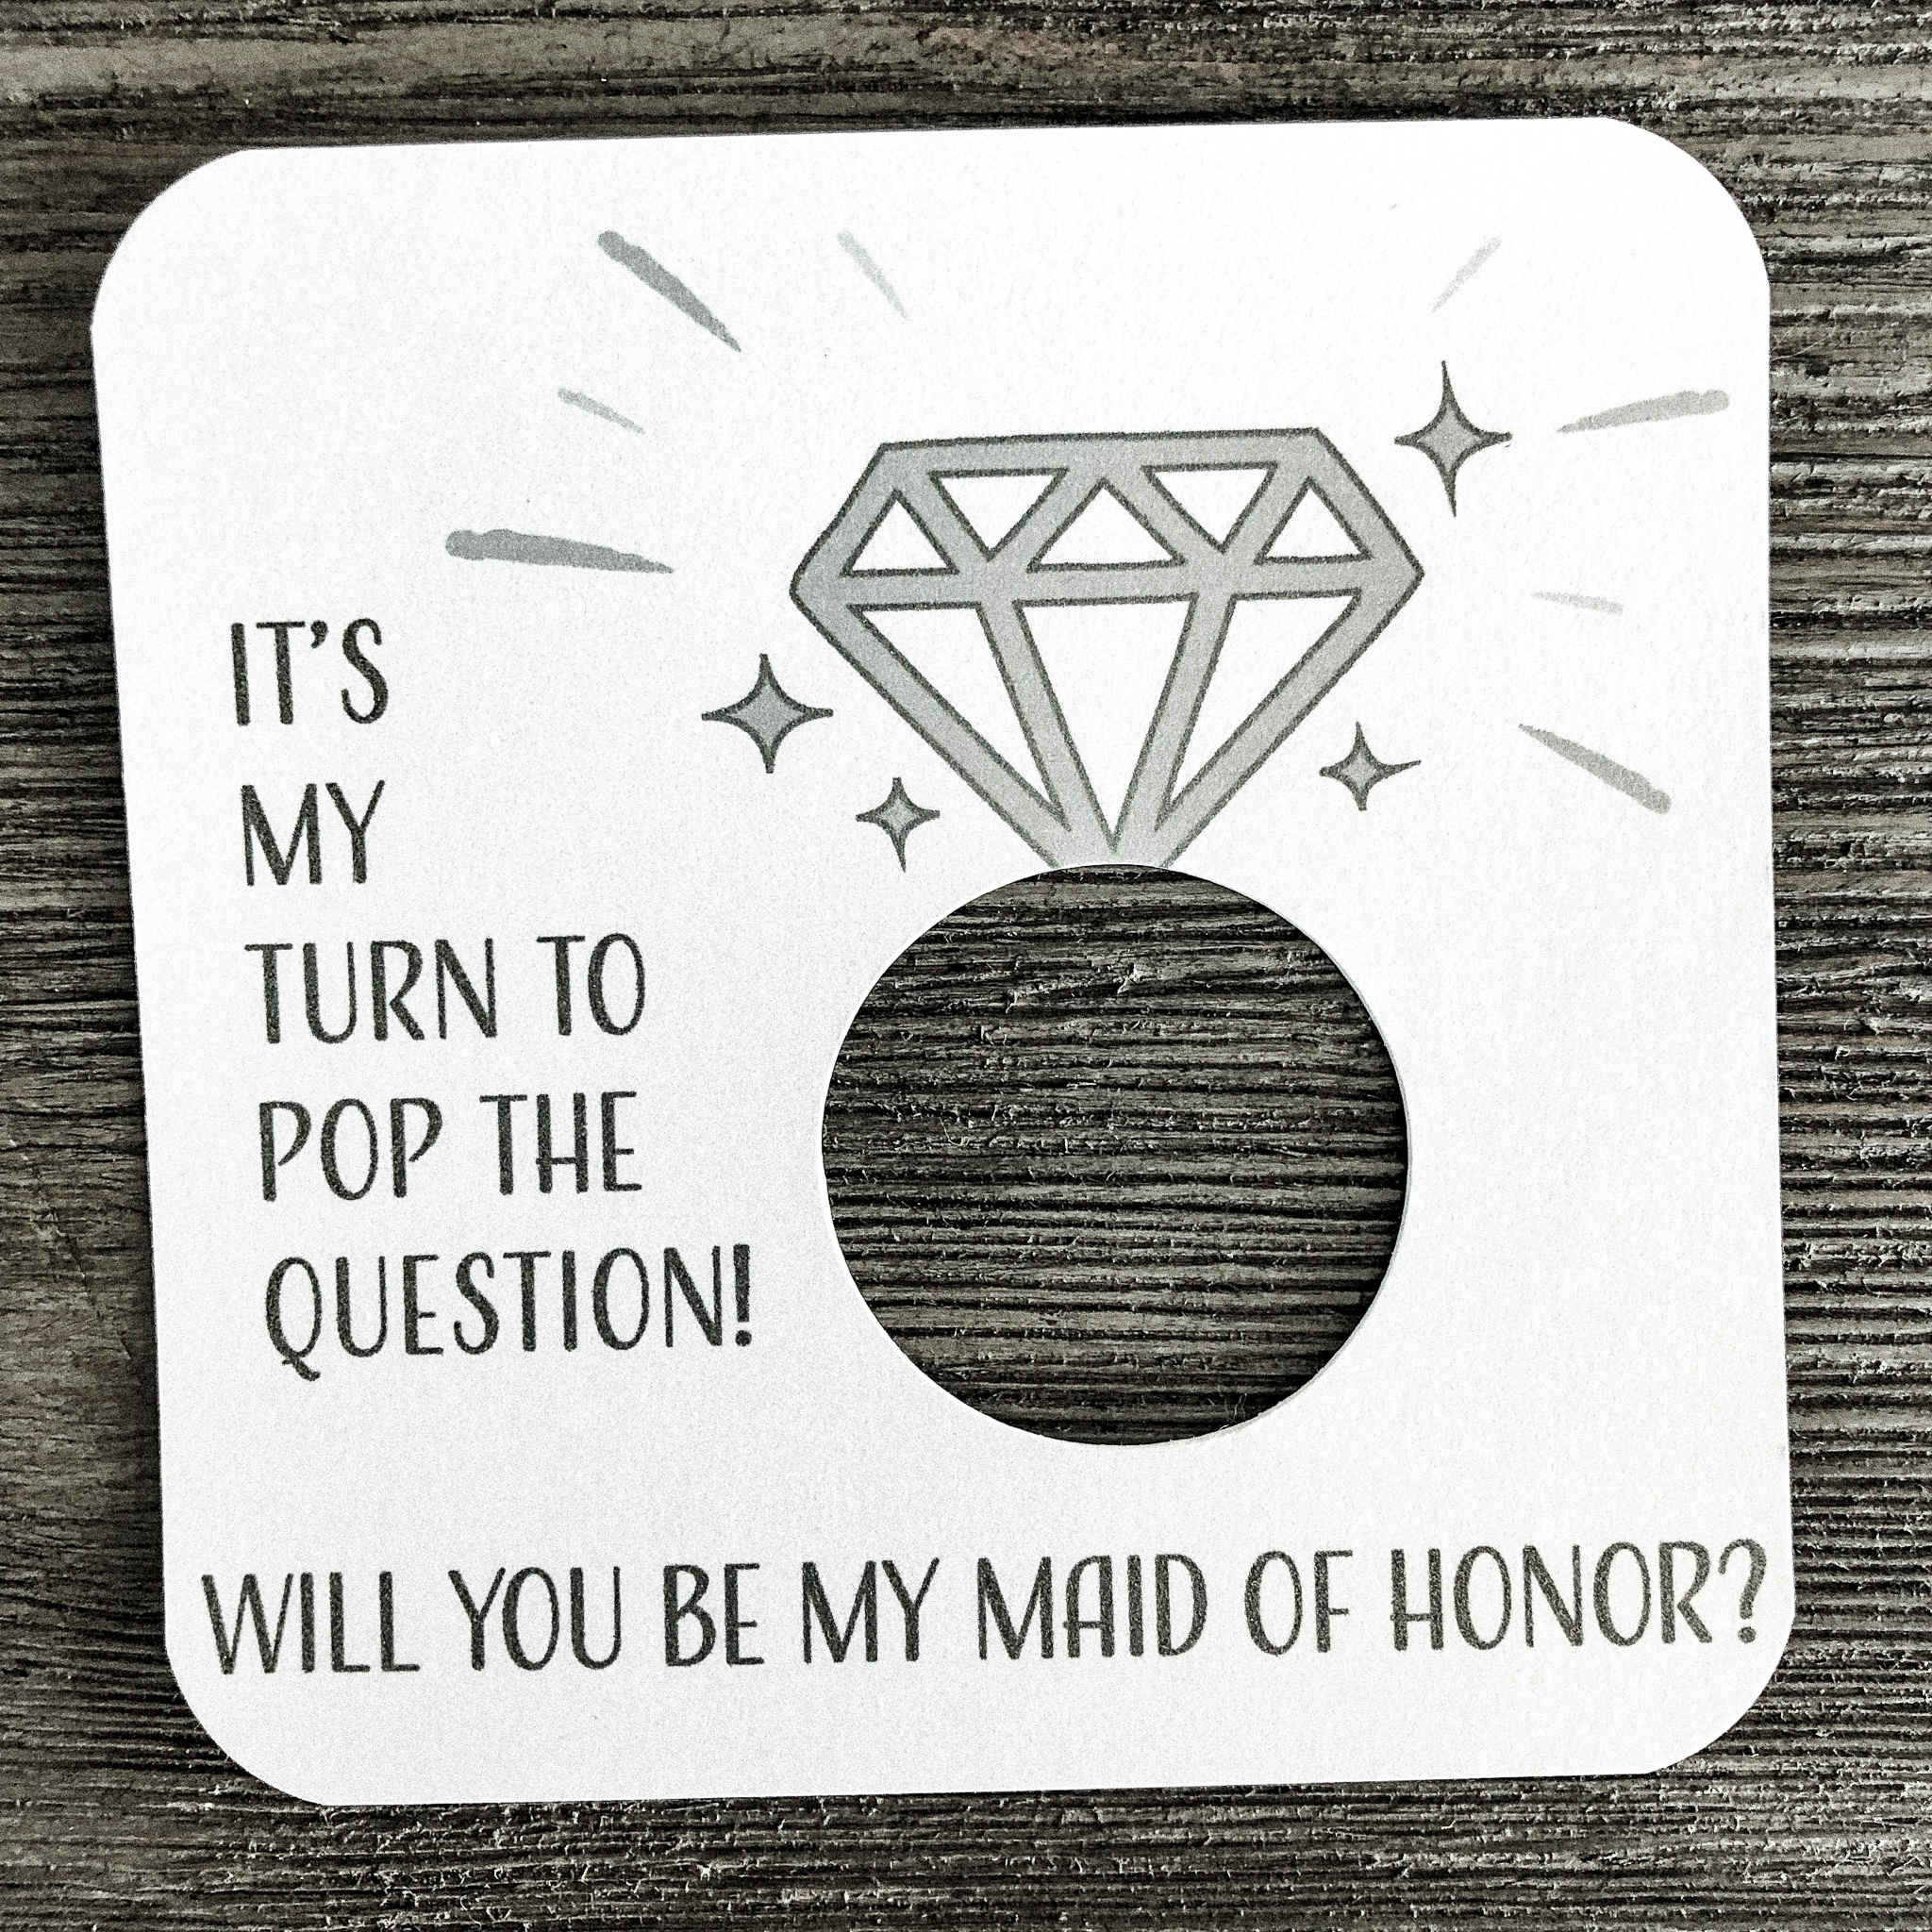 It's my turn to pop the question! Will you be my maid of honor? Shimmer white gold card stock